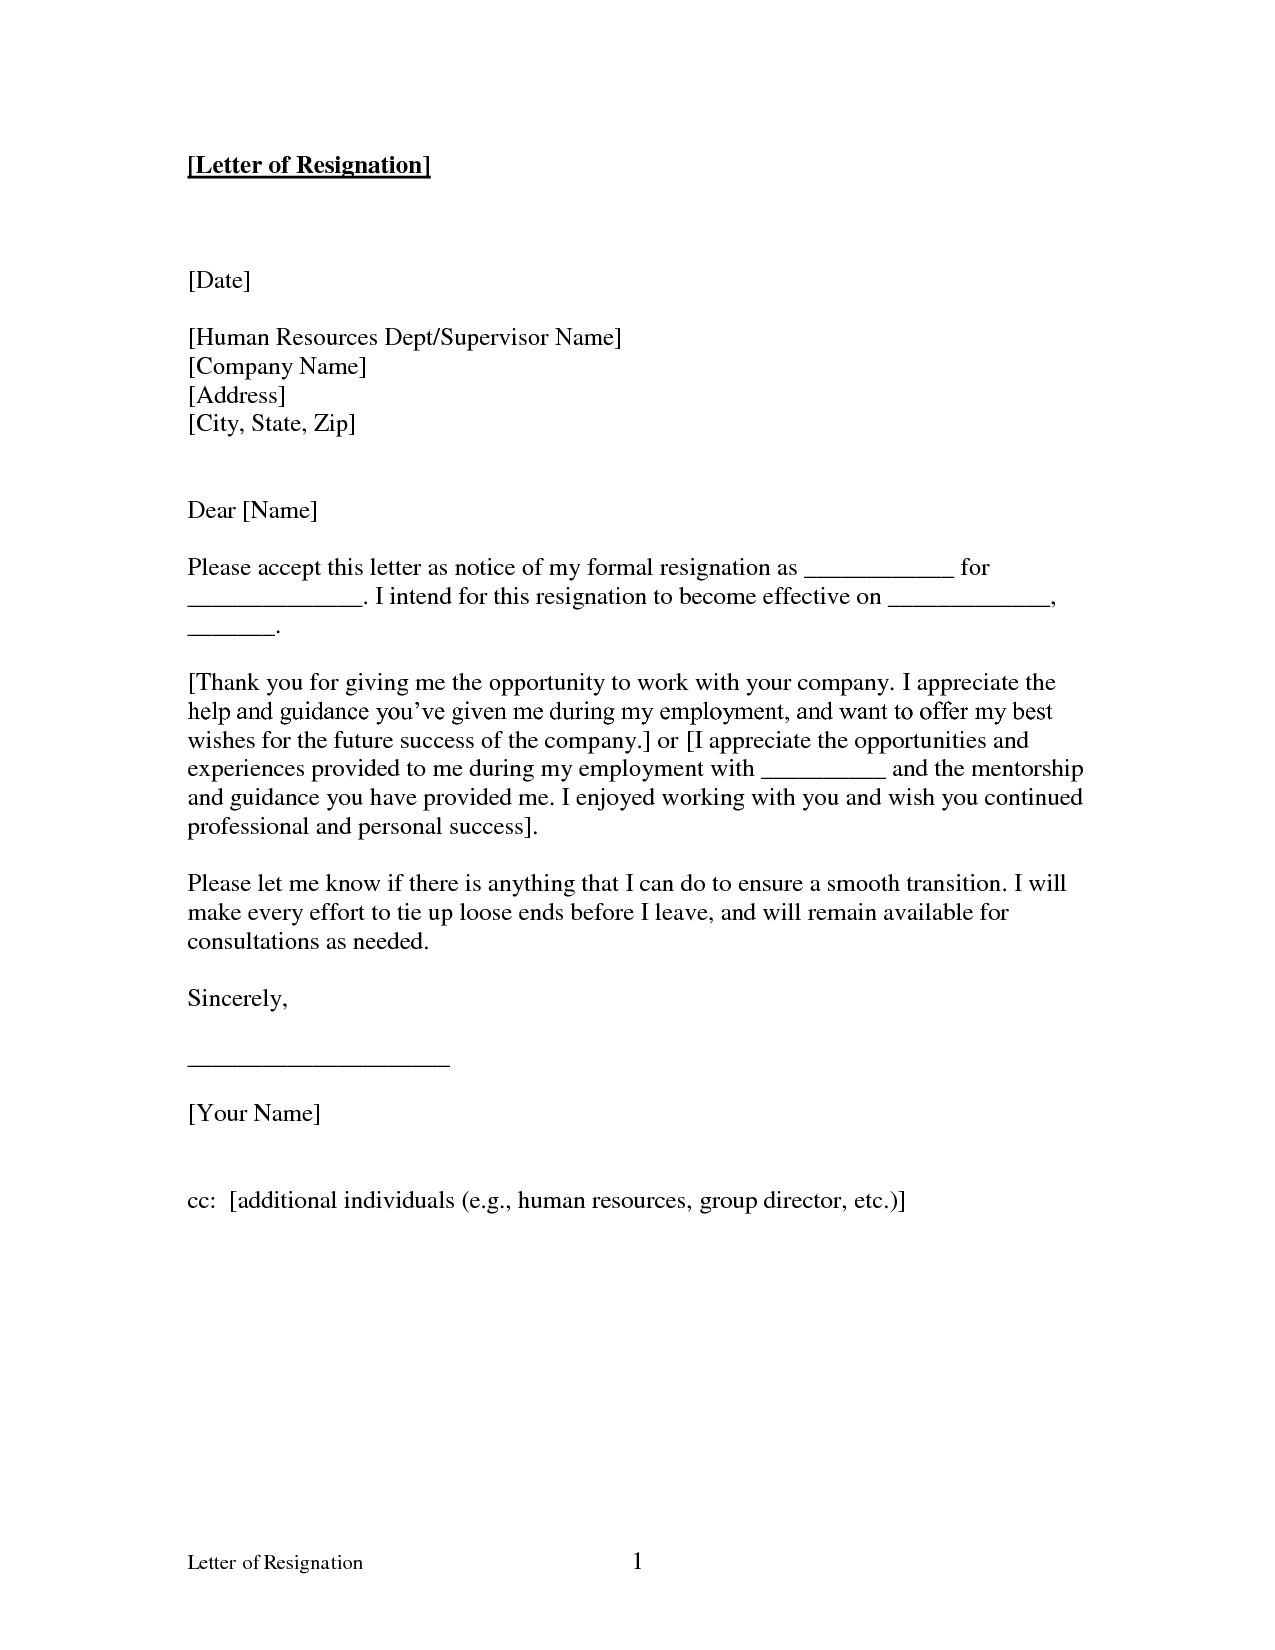 Real Estate Referral Letter Template - Printable Sample Letter Of Resignation form